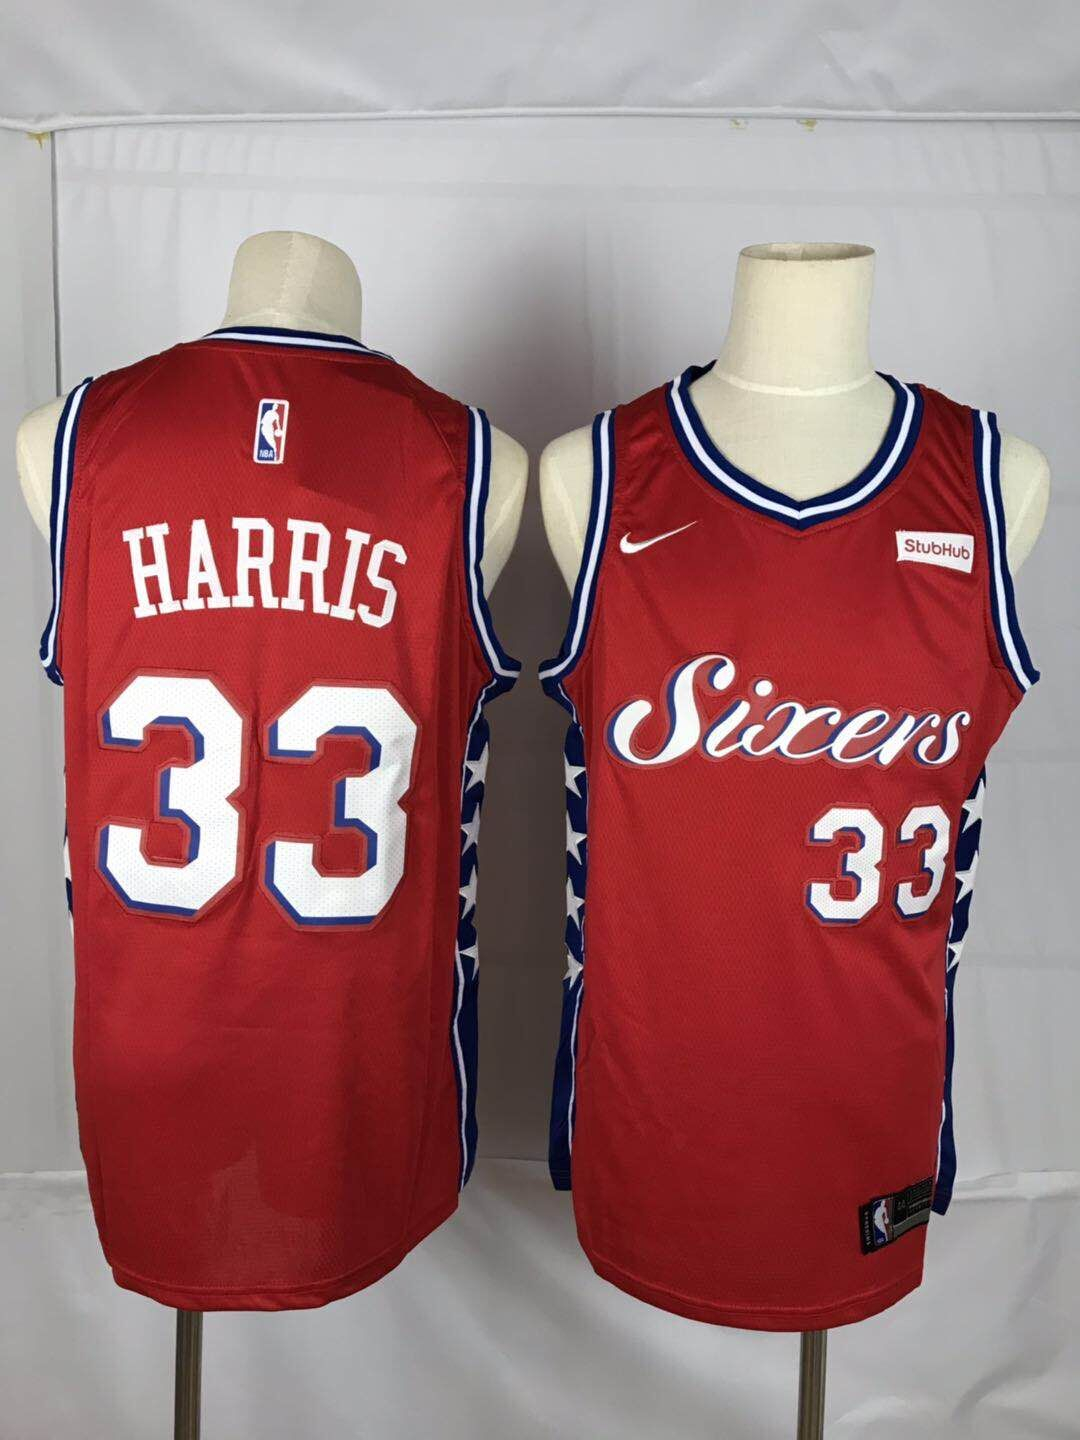 76ers 33 Tobias Harris Red Nike Throwback Swingman Jersey